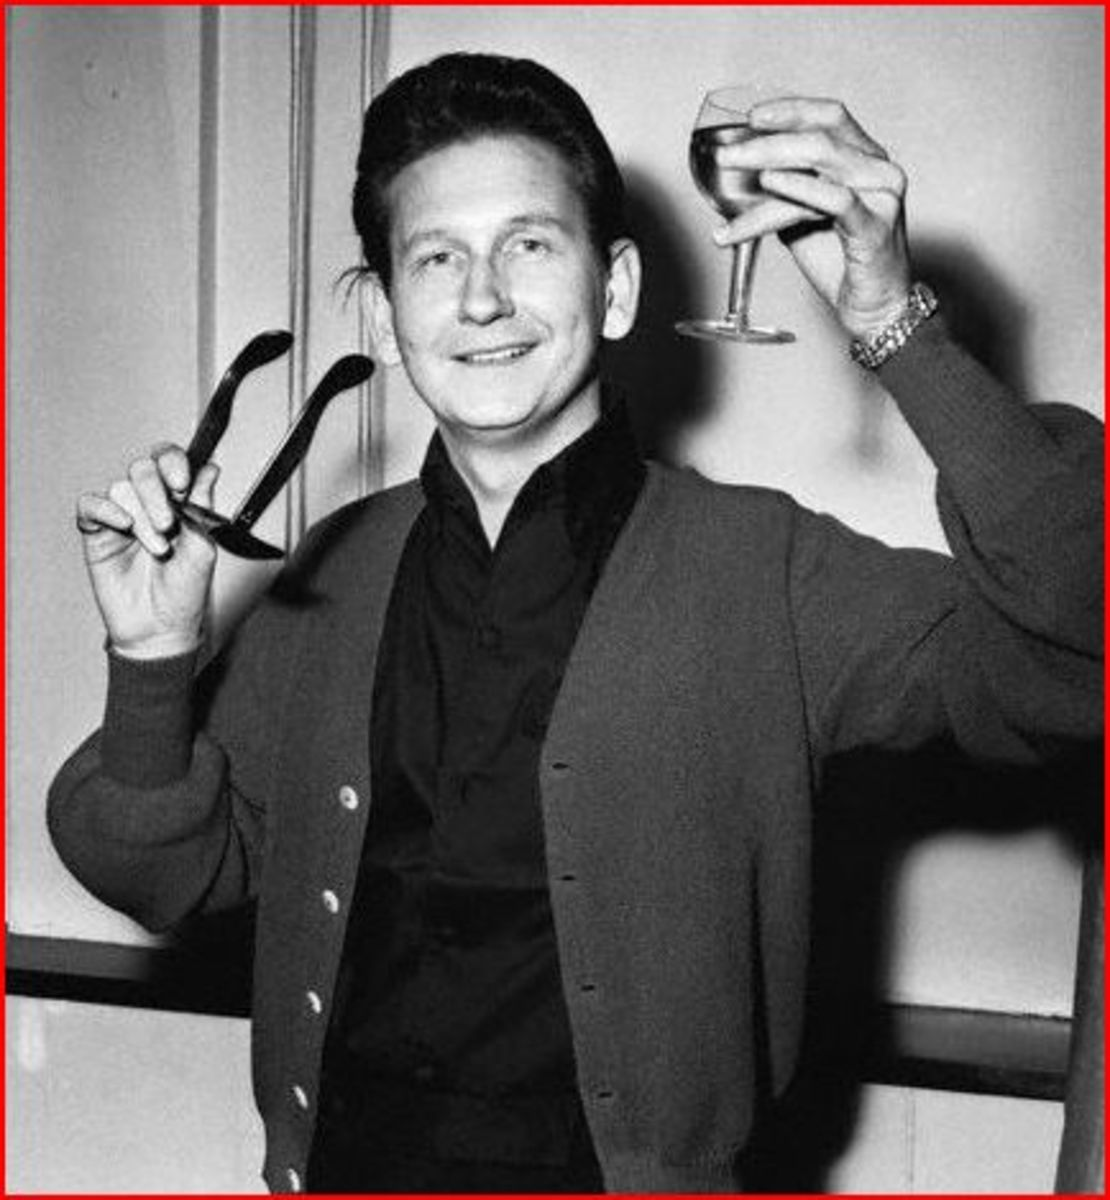 Roy Orbison wore his glasses of necessity, marketing, and shyness. The shyness is only on stage though.